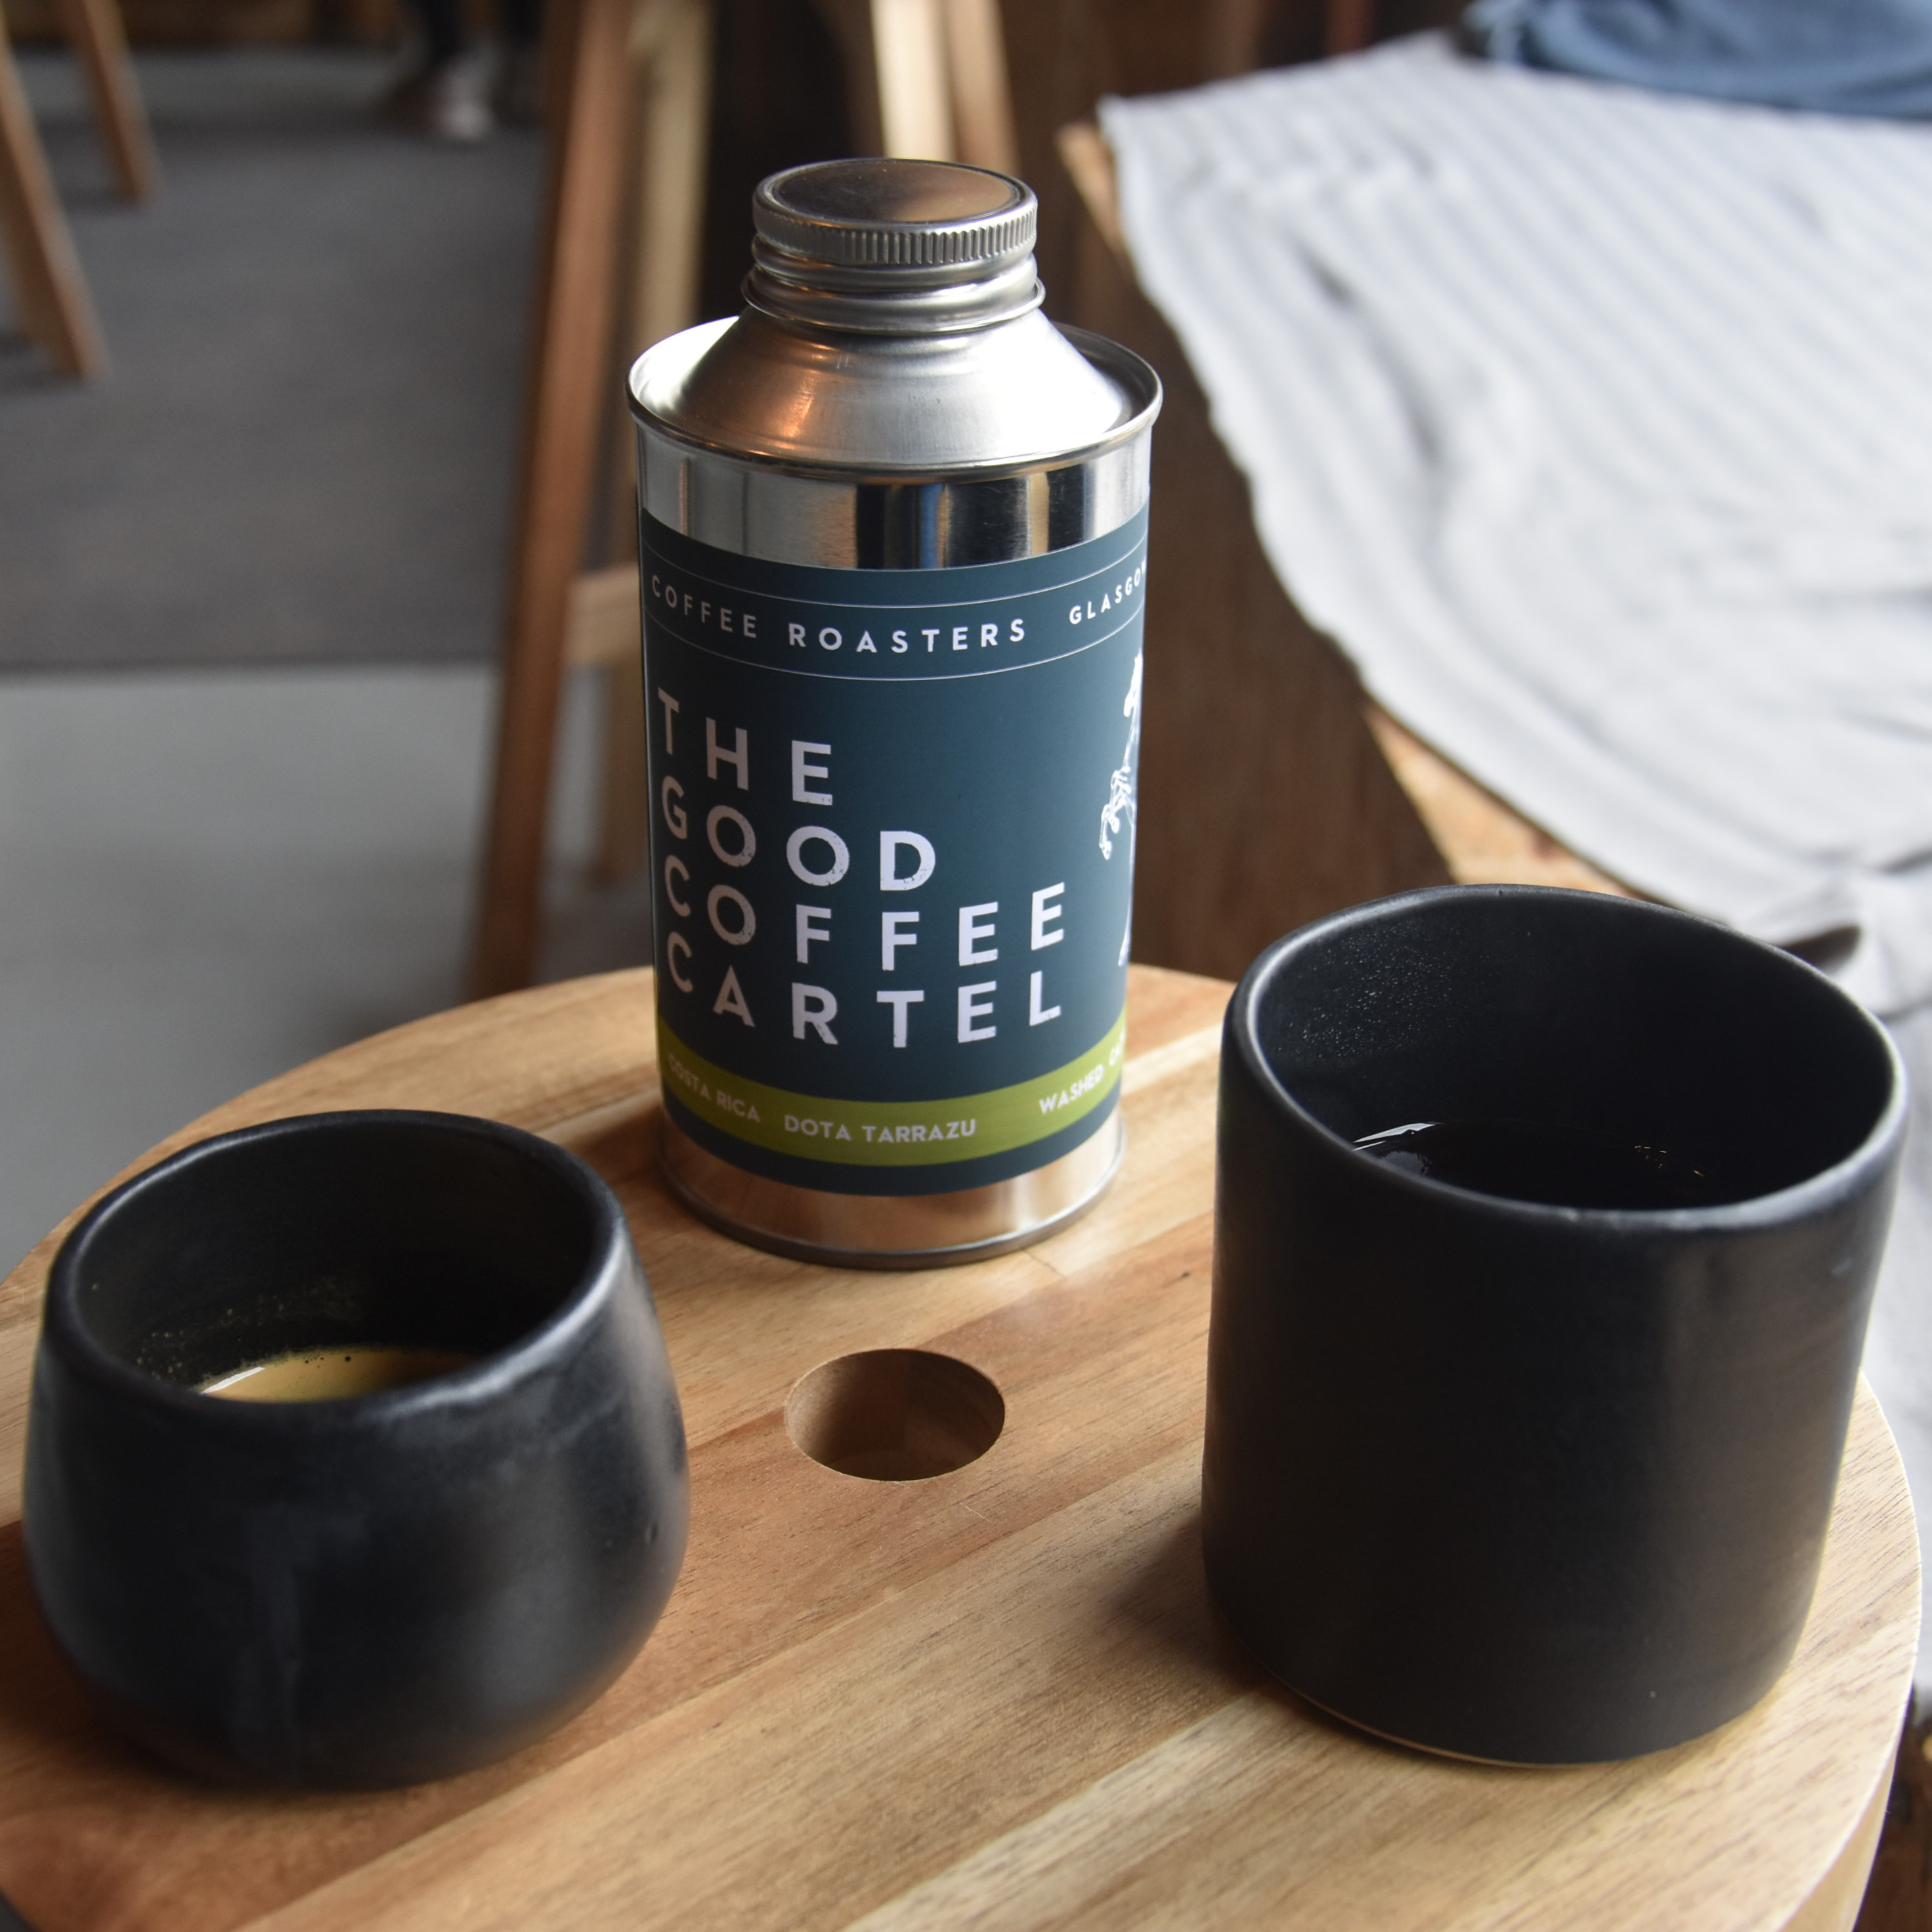 My espresso and batch-brew, both served in ceramic cups, handmade on-site at The Good Coffee Cartel, with a tin of the Costa Rican single-origin beans behind .